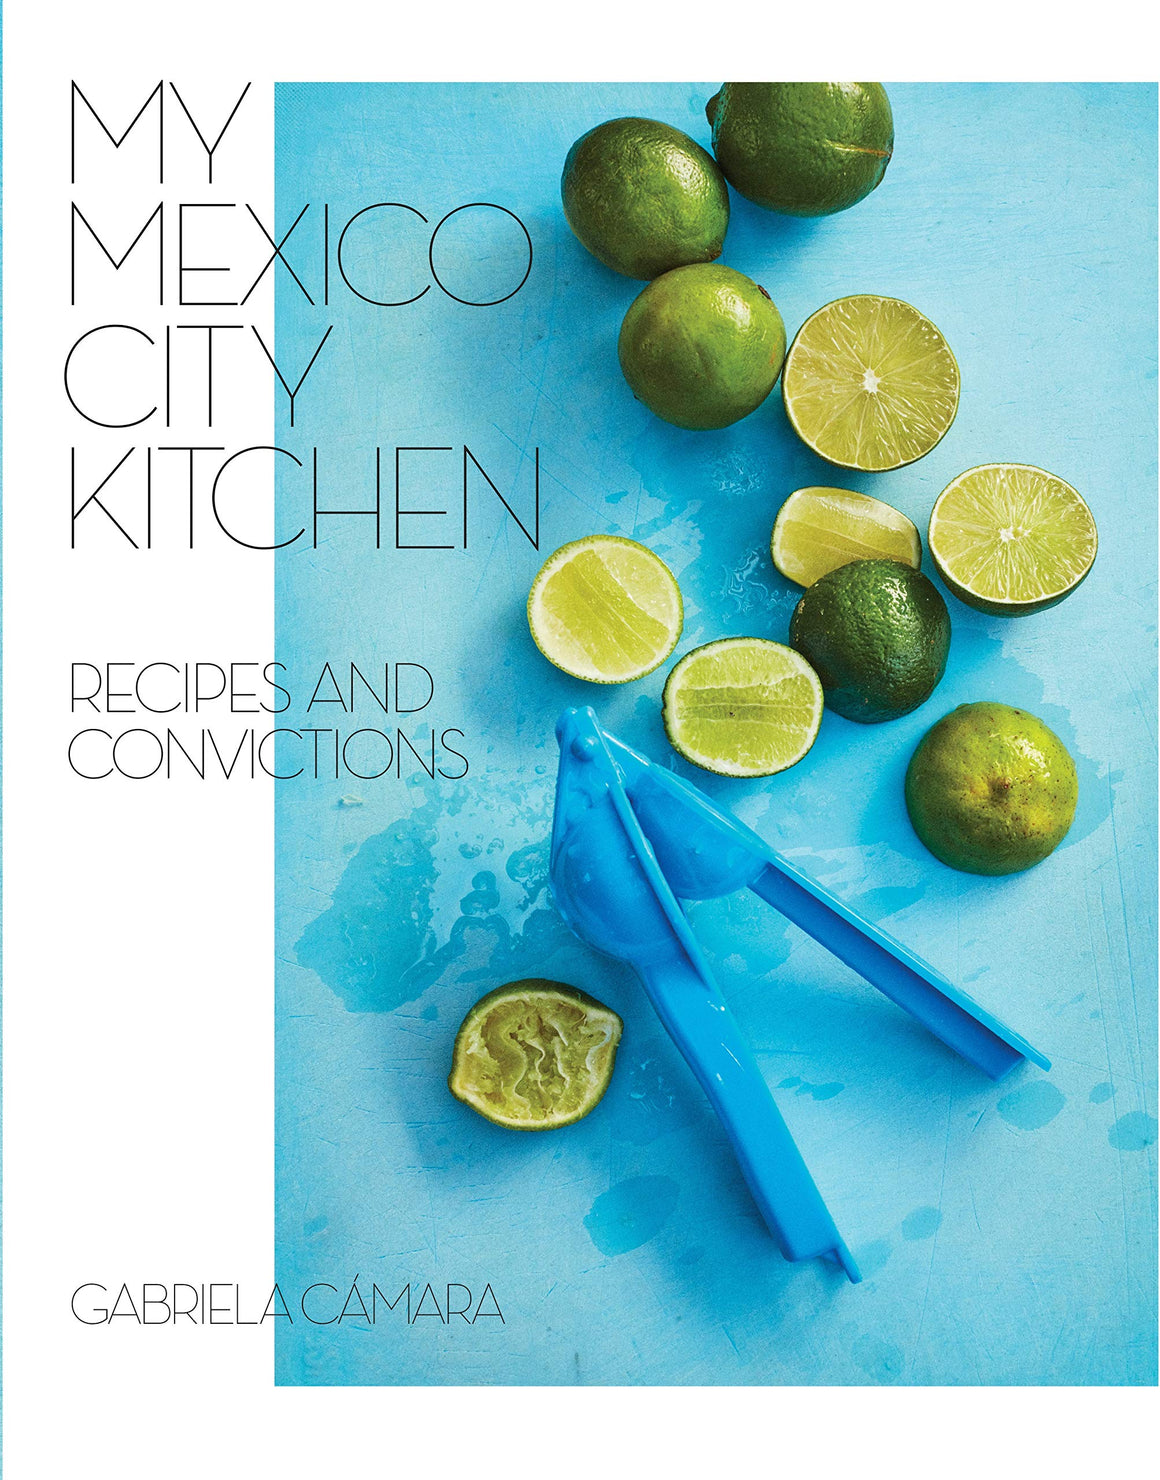 SIGNED! Gabriela Cámara • My Mexico City Kitchen: Recipes and Convictions